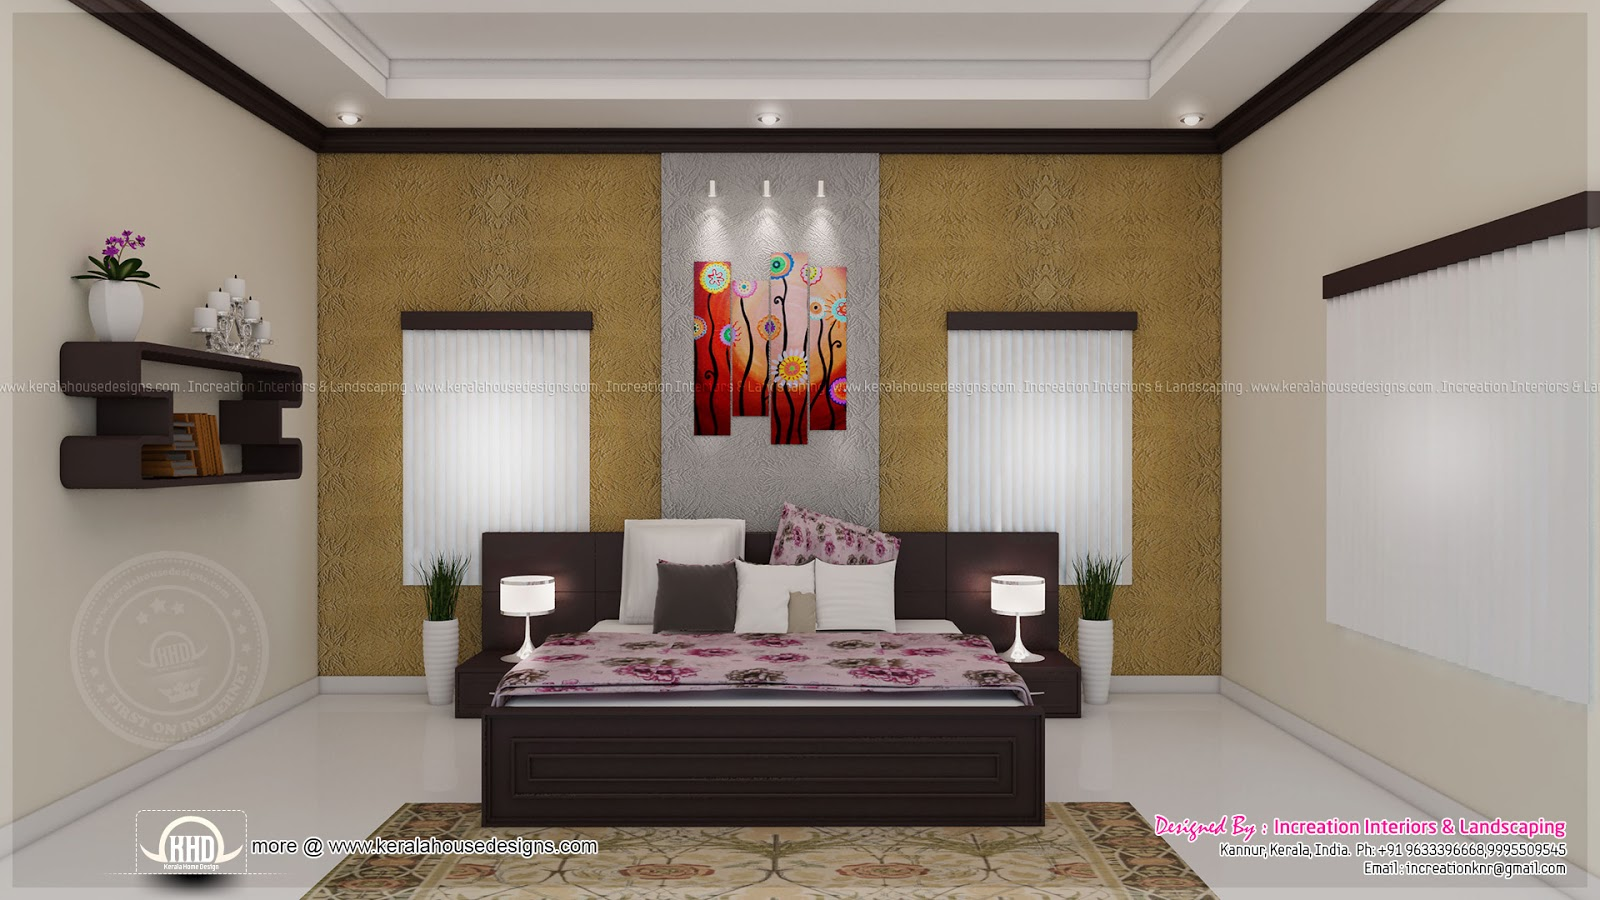 House interior ideas in 3d rendering kerala home design for Interior design images for bedrooms